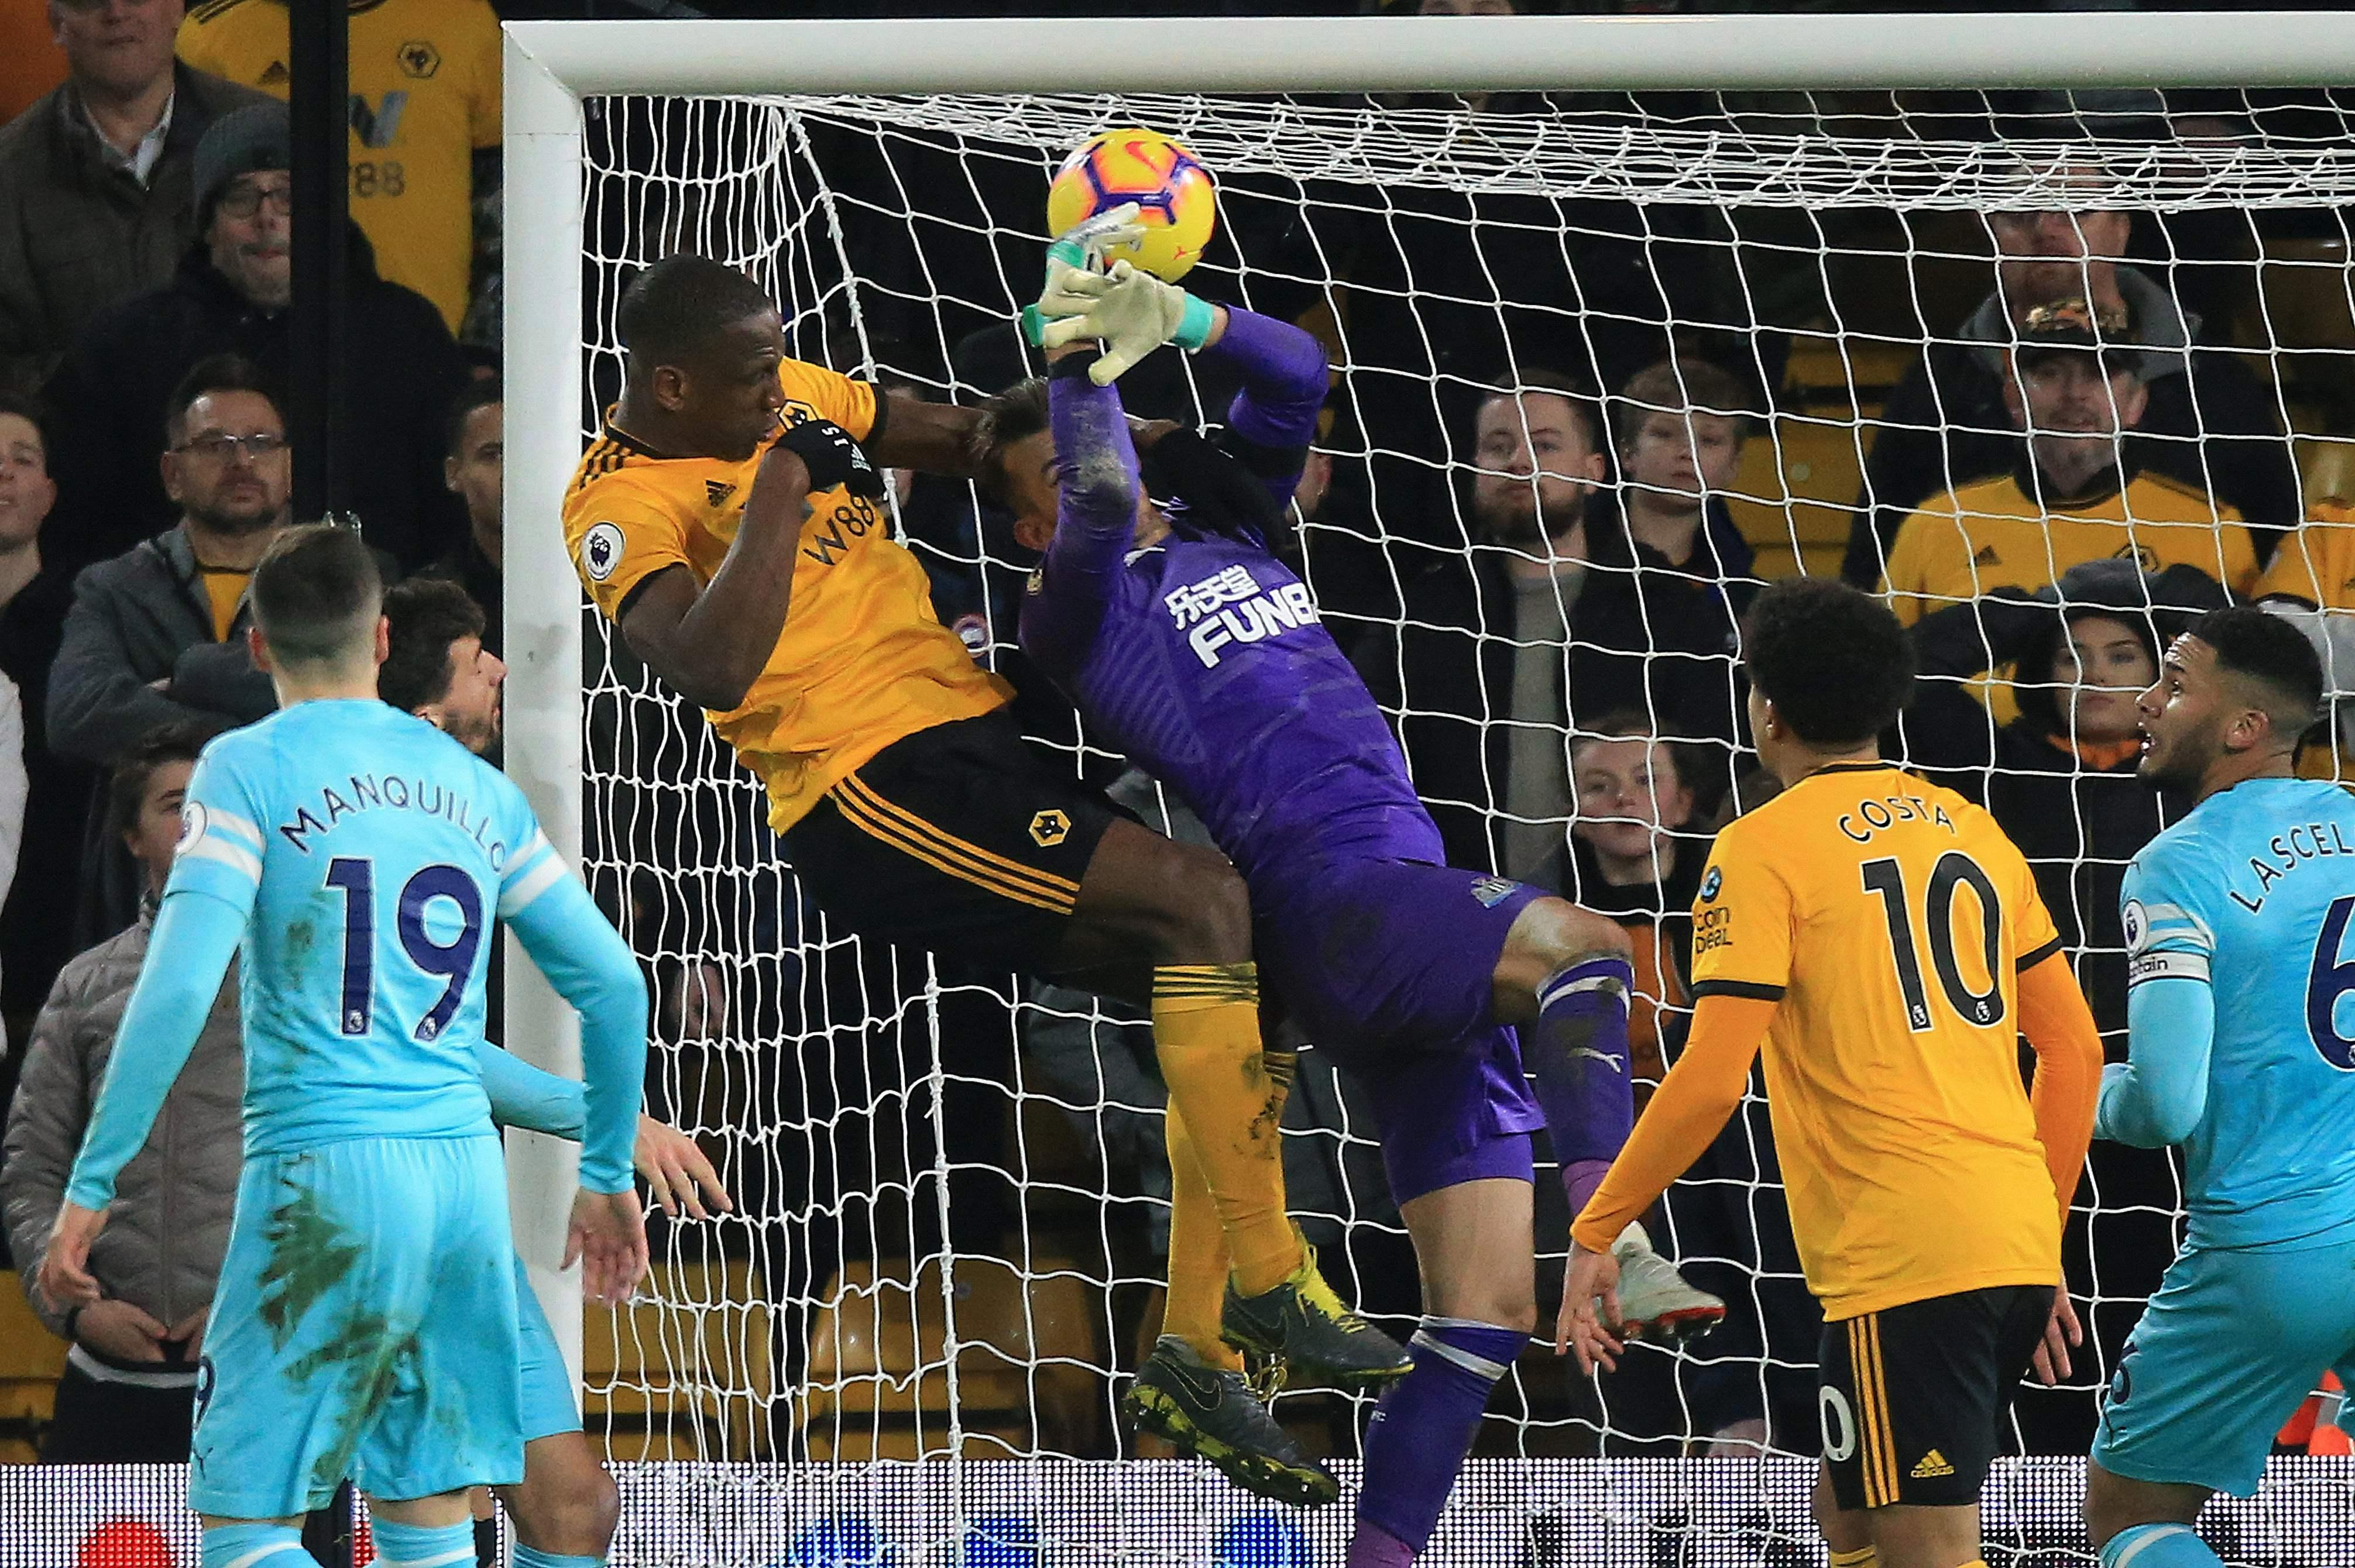 Premier League: Newcastle denied vital win by controversial equalizer at Wolves